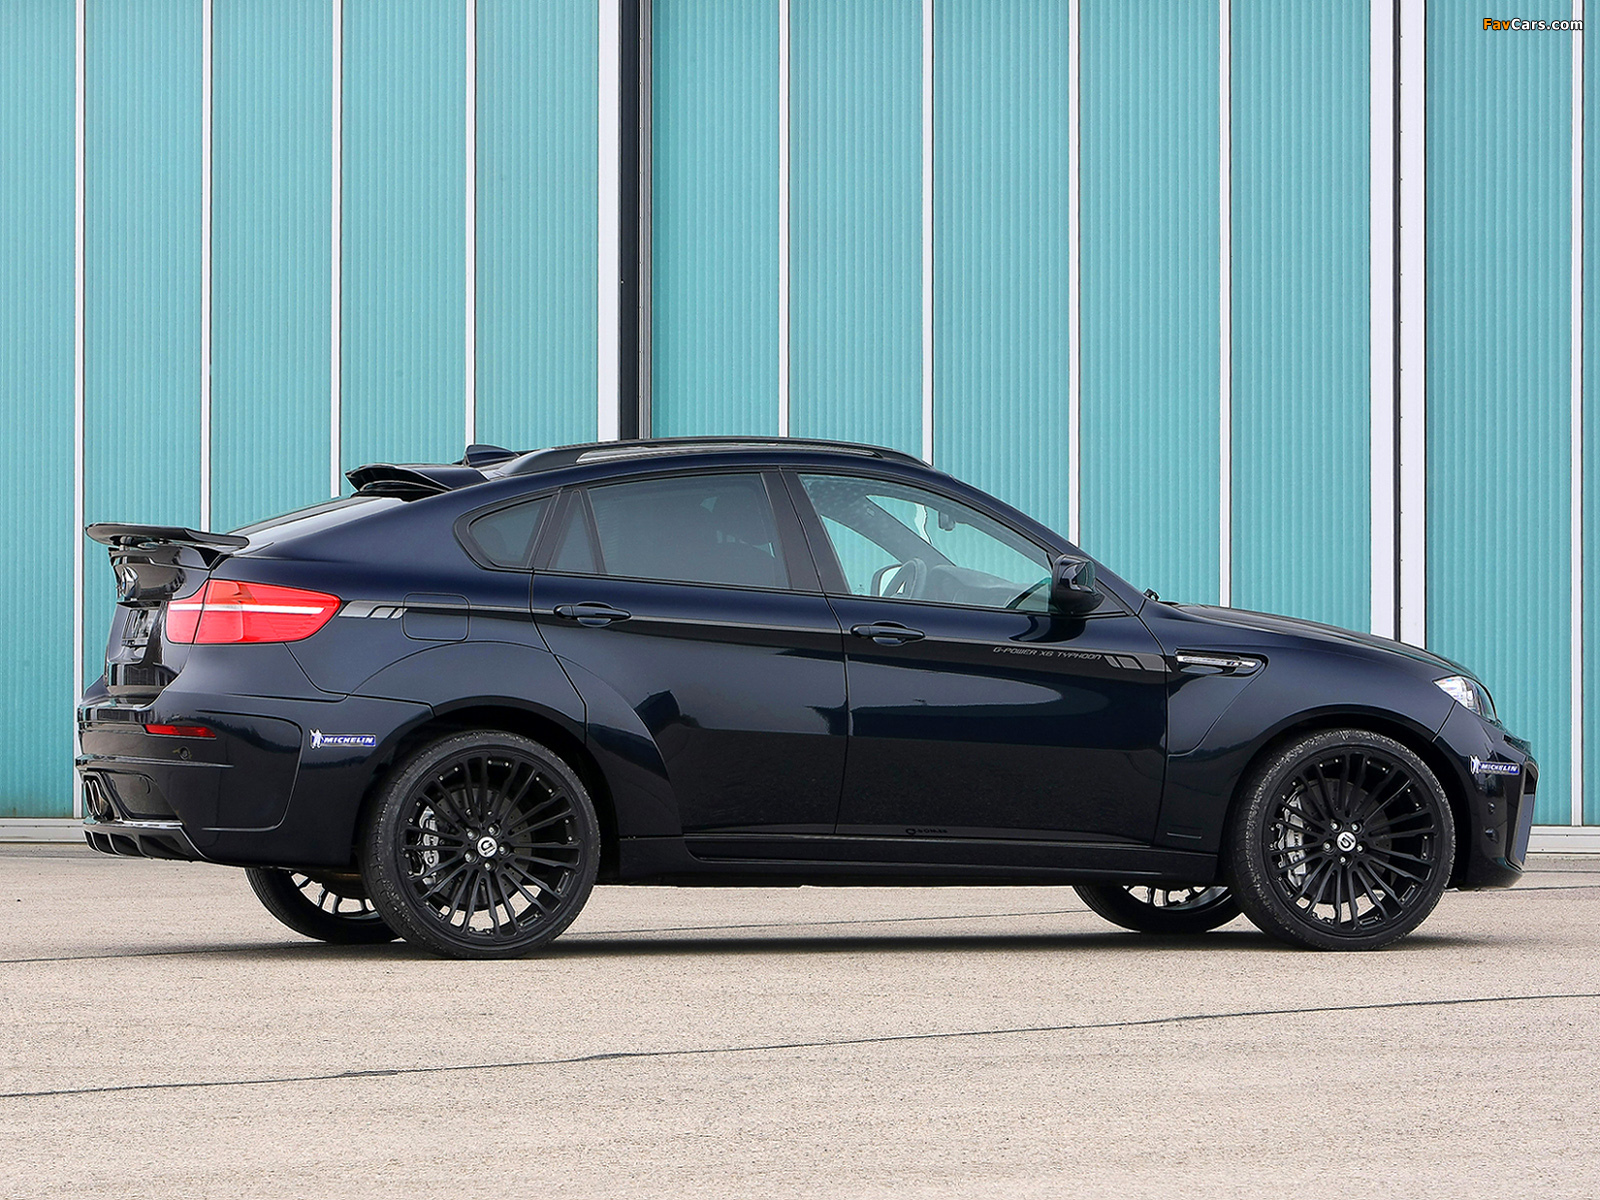 G-Power BMW X6 M Typhoon (E71) 2010 pictures (1600x1200)